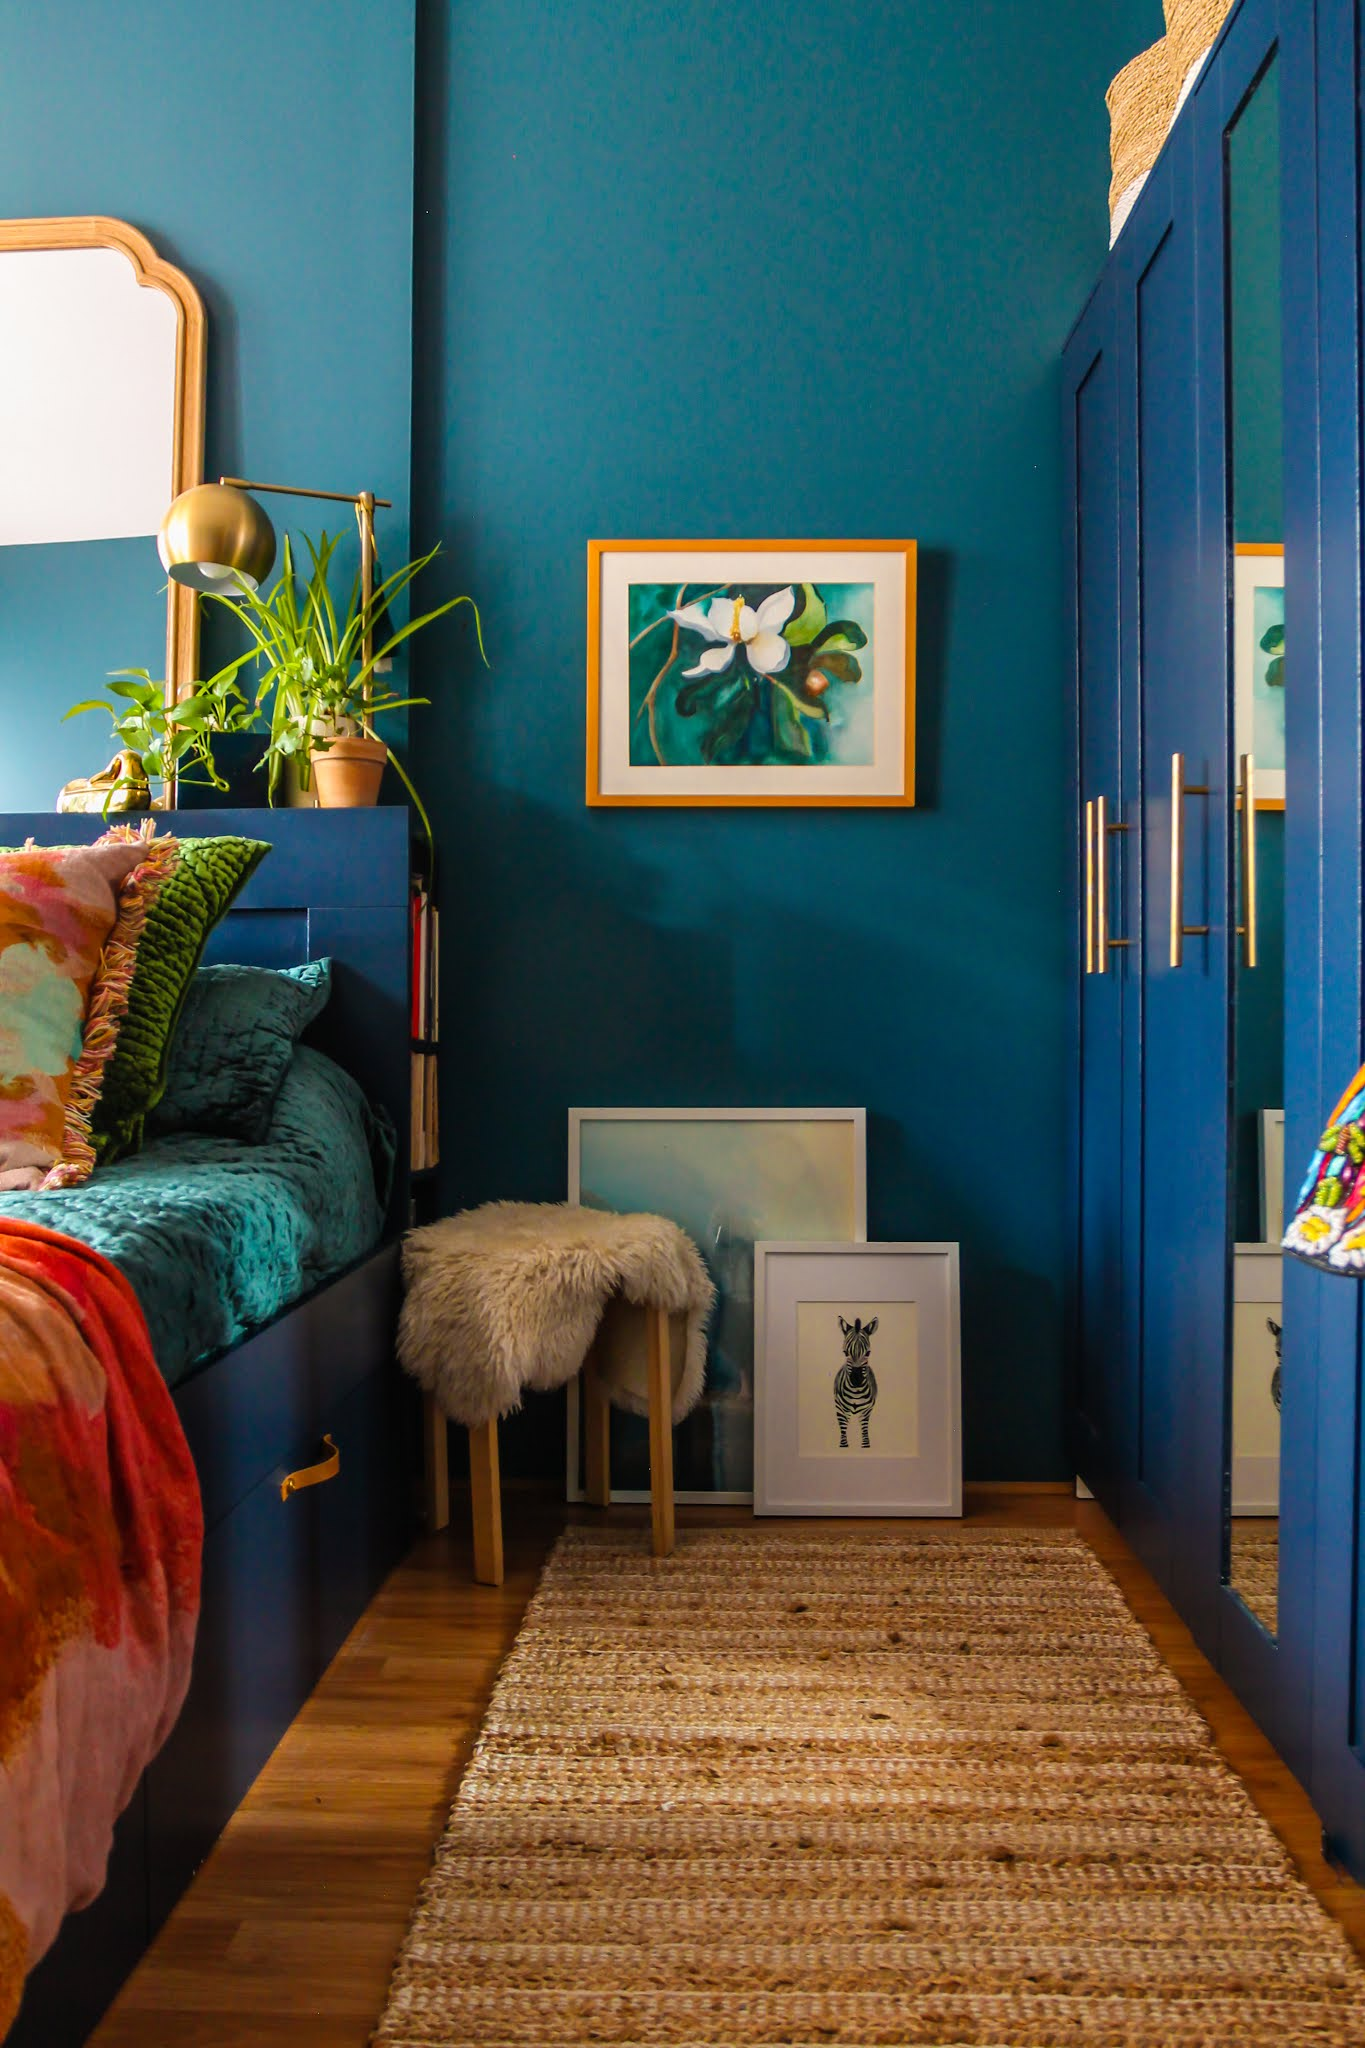 blue and green bedroom ideas // blue bed // ikea bed // ikea bedrooms // ikea hacks // jeweltone bedrooms // boho bedrooms // colorful bedroom inspo // colorful bedrooms // boho bedroom ideas